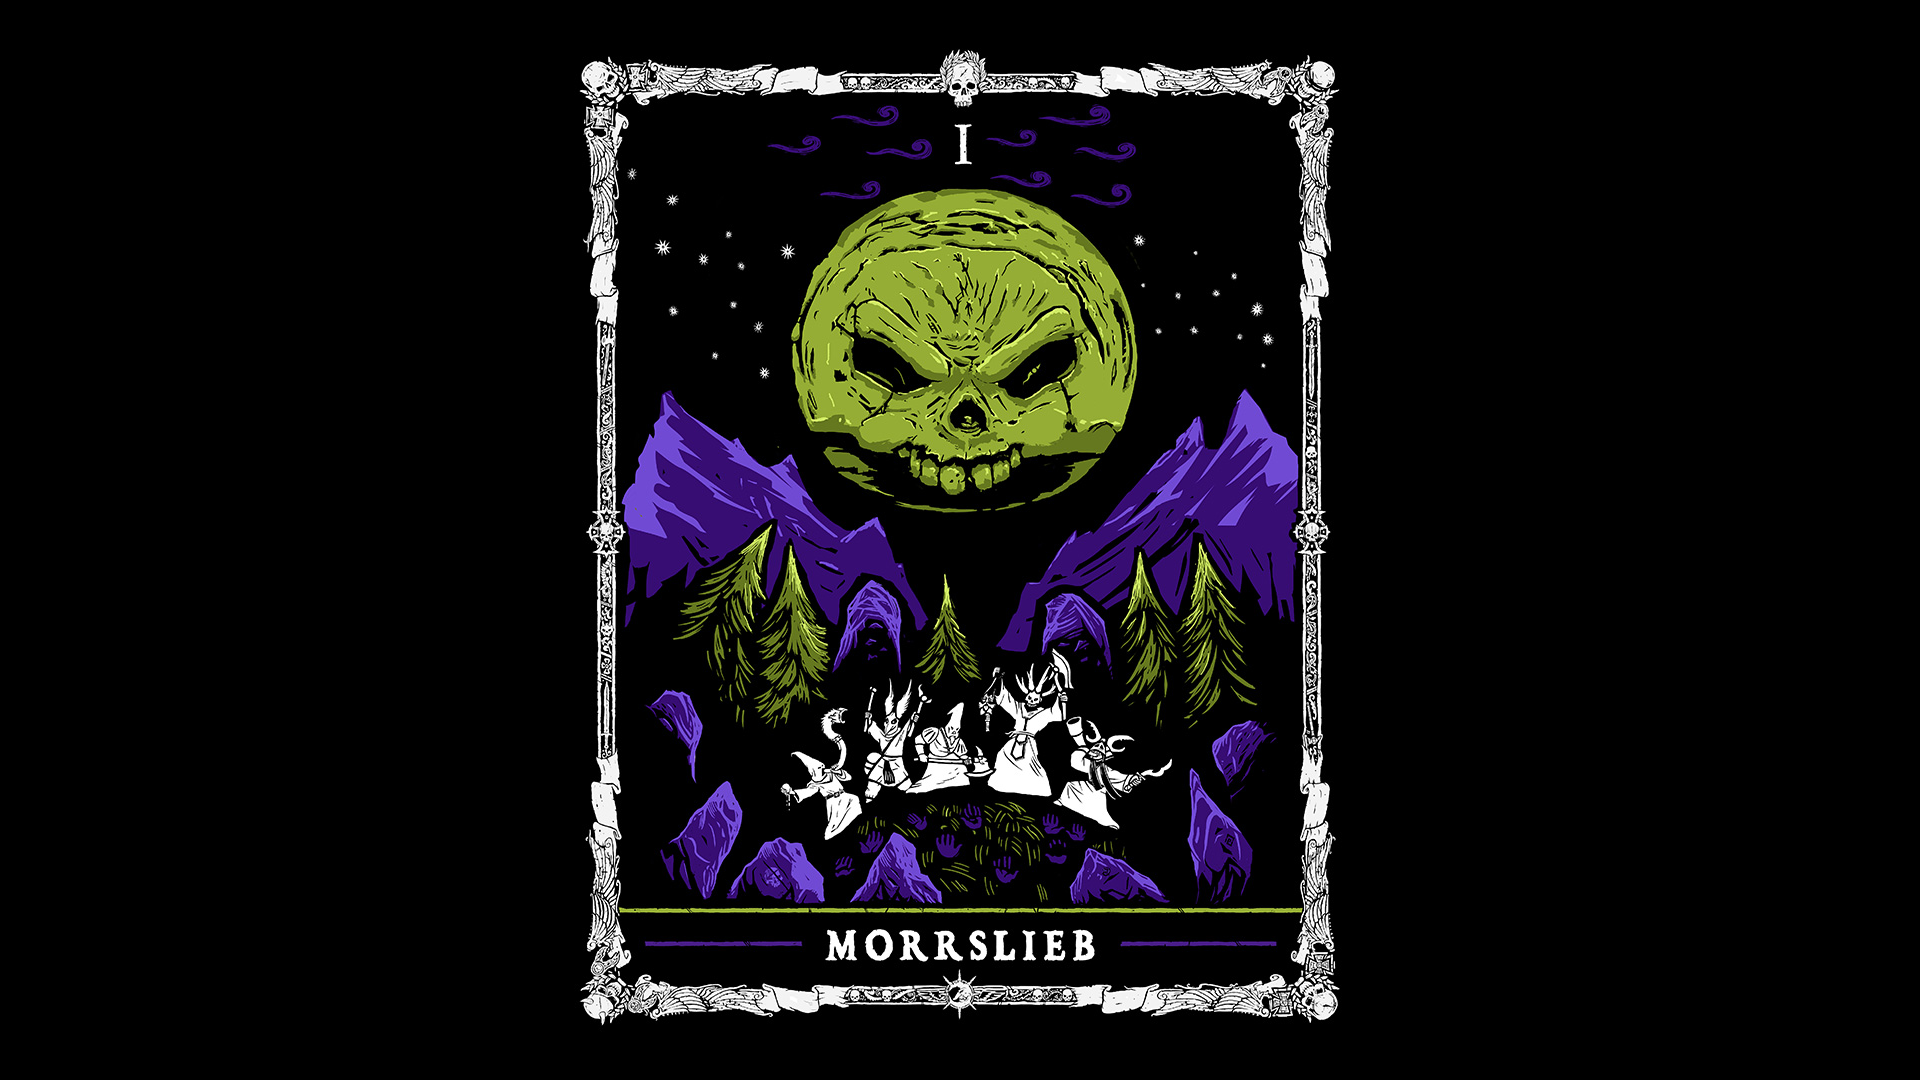 General 1920x1080 Warhammer Warhammer Fantasy WFRP tarot Moon forest Morrslieb stars skull Table Top RPG Roleplaying